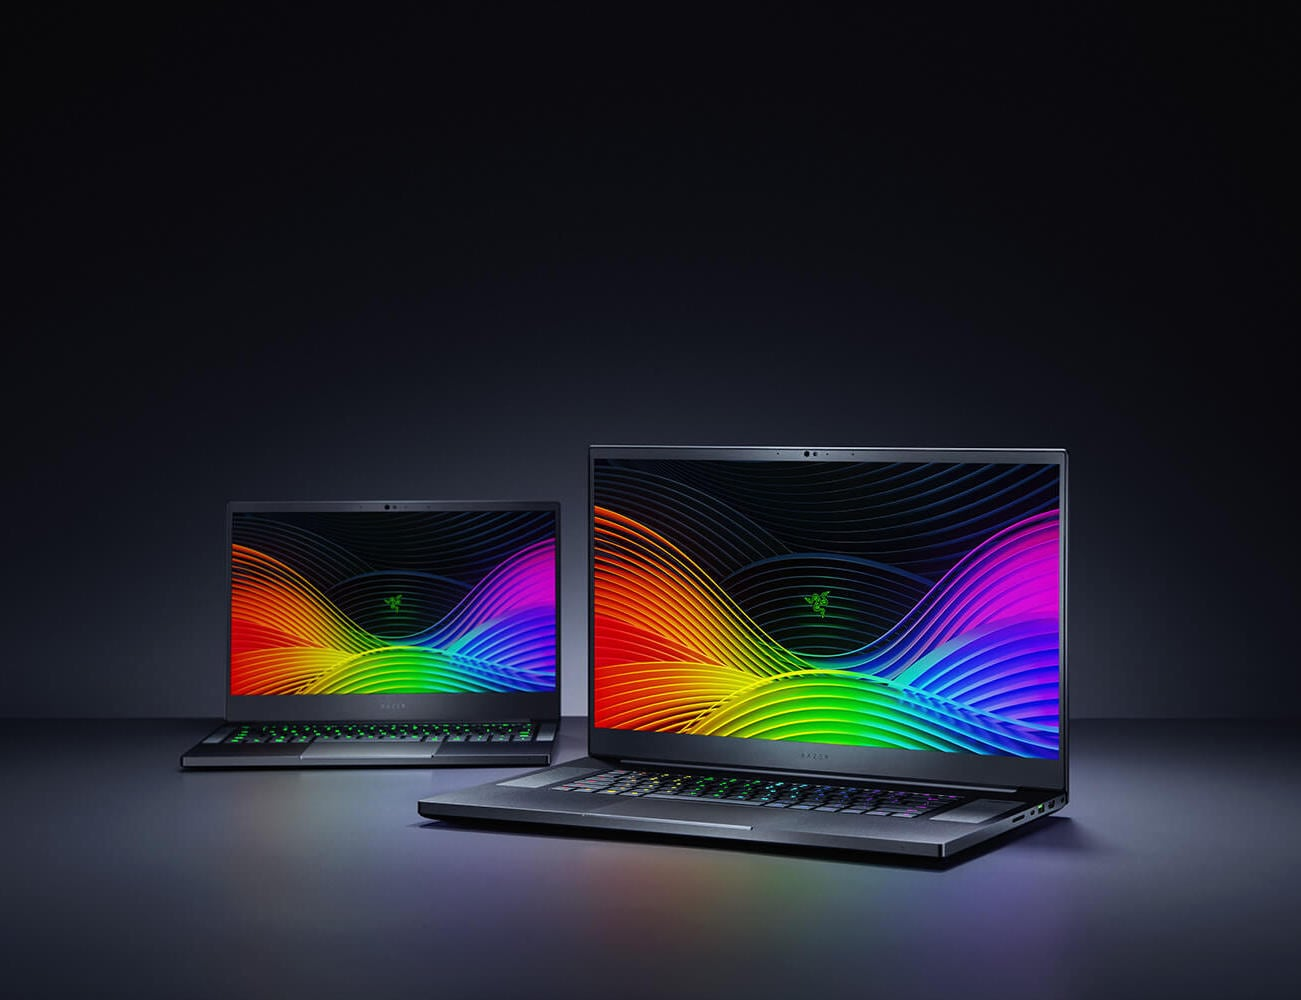 Razer Blade Pro 17 Gaming Laptop packs desktop-quality into a small package